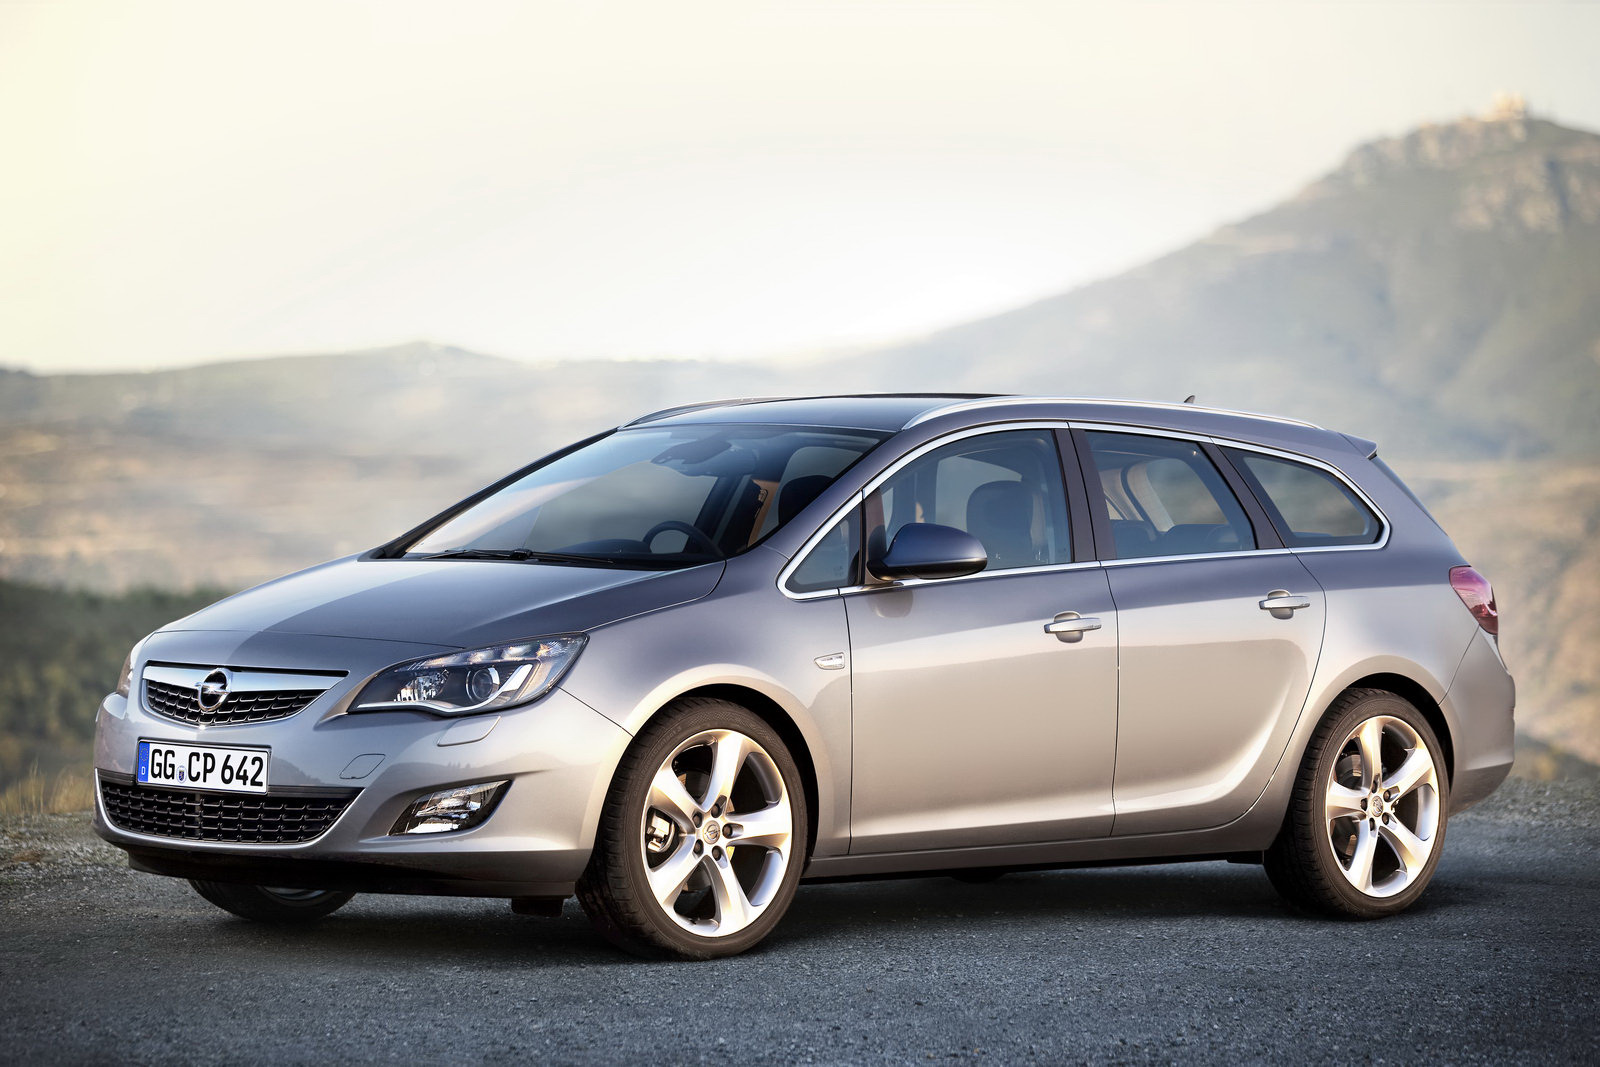 New Opel Astra Sports Tourer Unveiled Should Buick Bring it to the Wallpapers HD